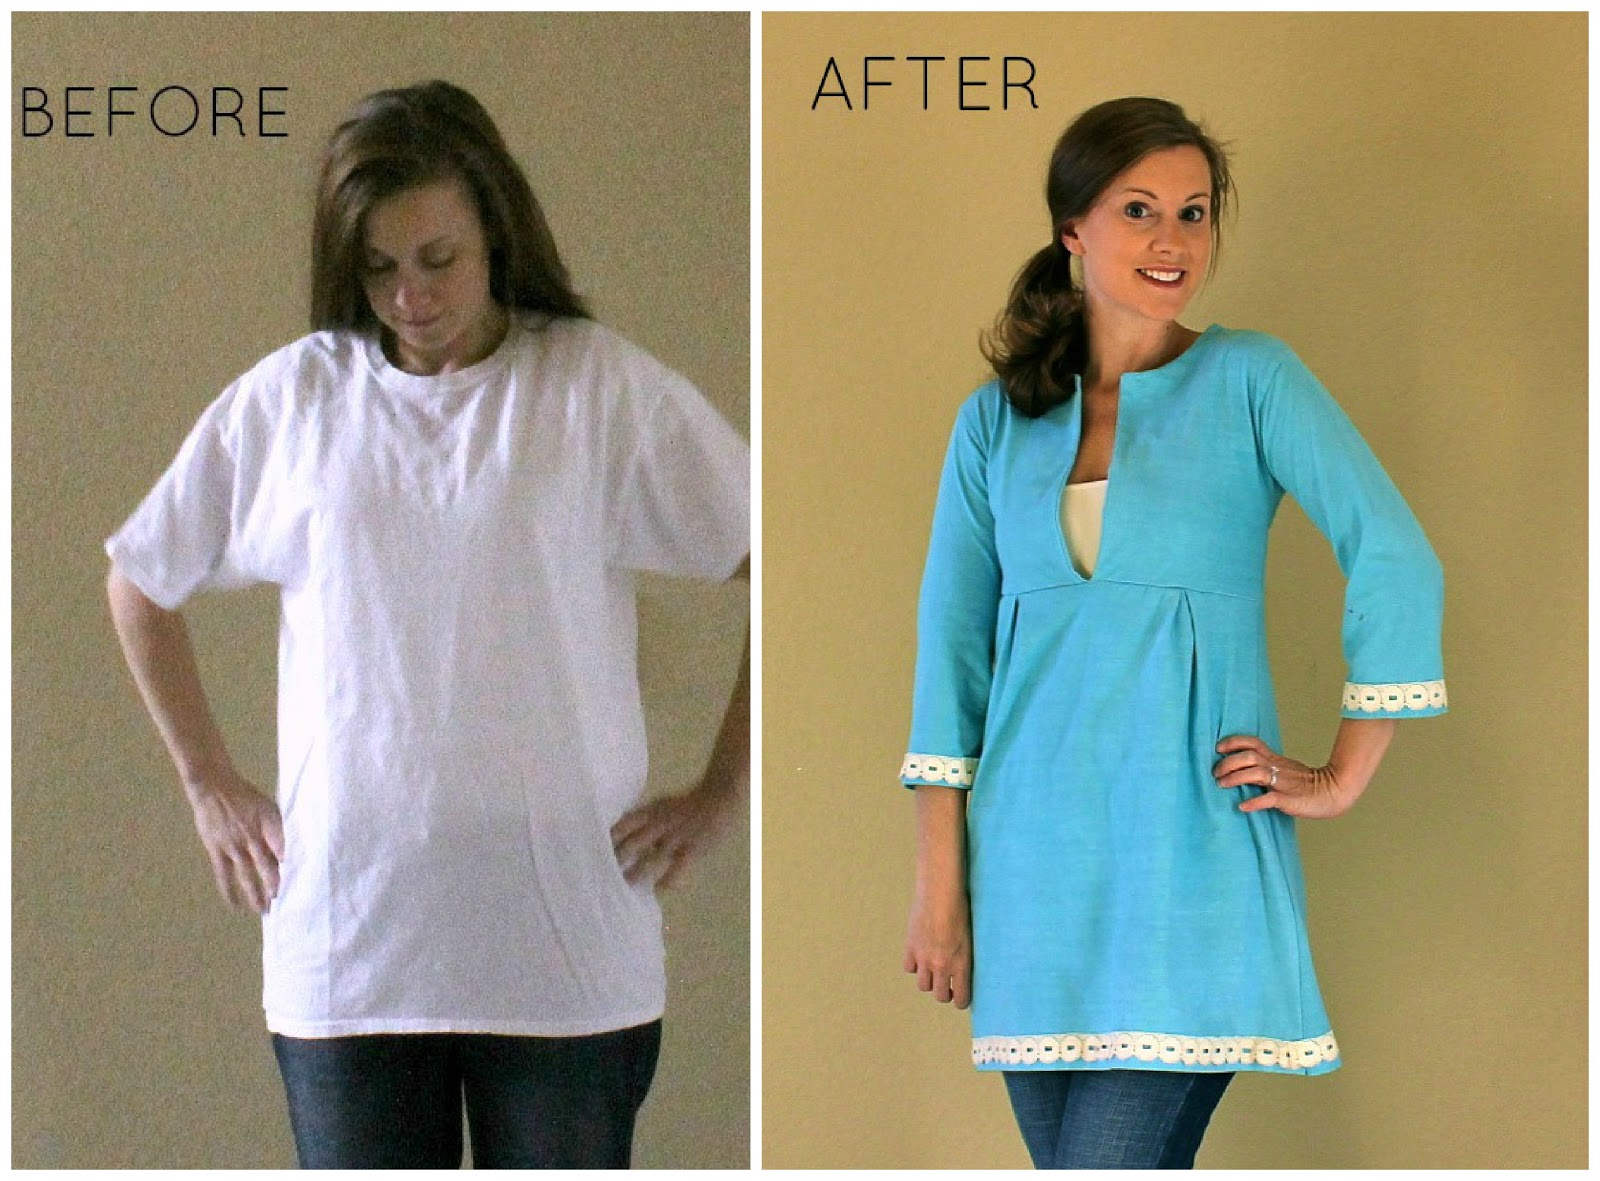 http://4.bp.blogspot.com/-4SXaXSv8CuM/UMv75Yxx9hI/AAAAAAAABT4/nnNUWr2rlxw/s1600/tunic+before+and+after.jpg